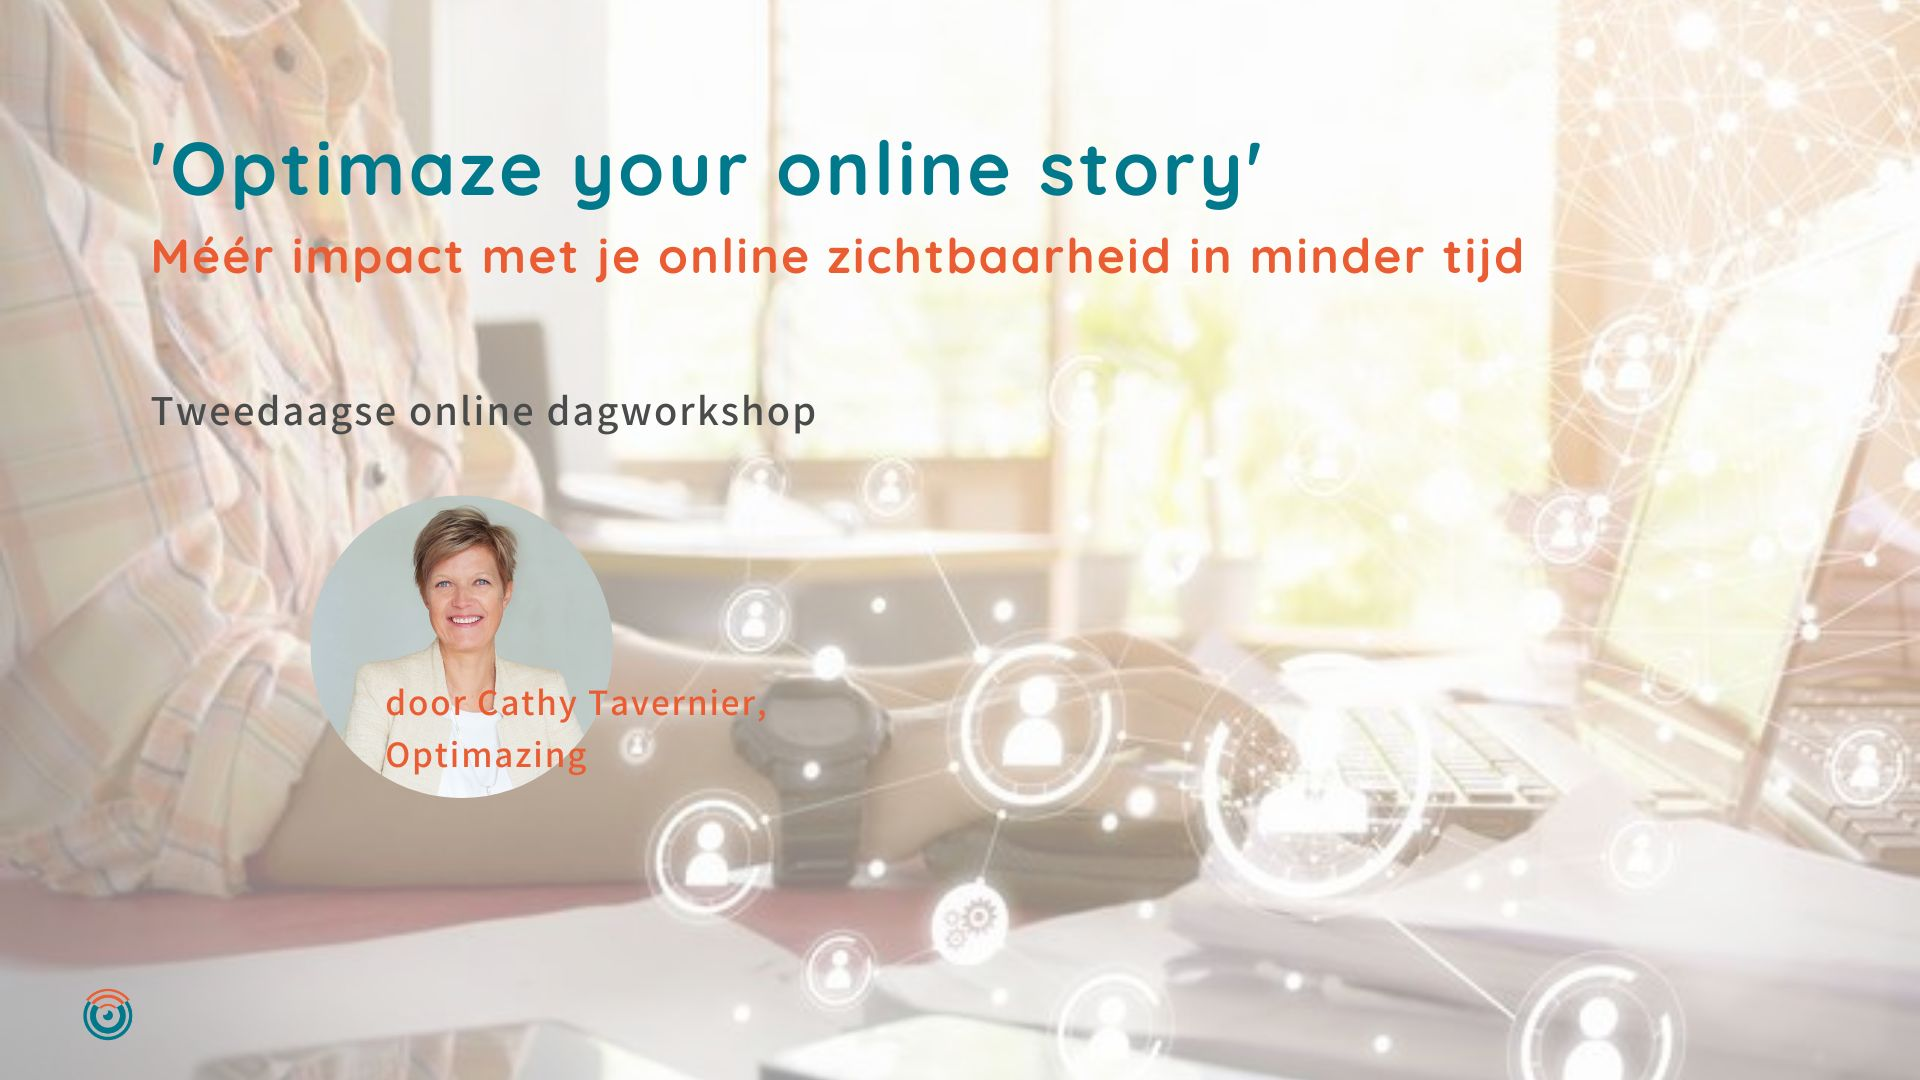 Tweedaagse online dagworkshop 'Optimaze your online story' met Cathy Tavernier